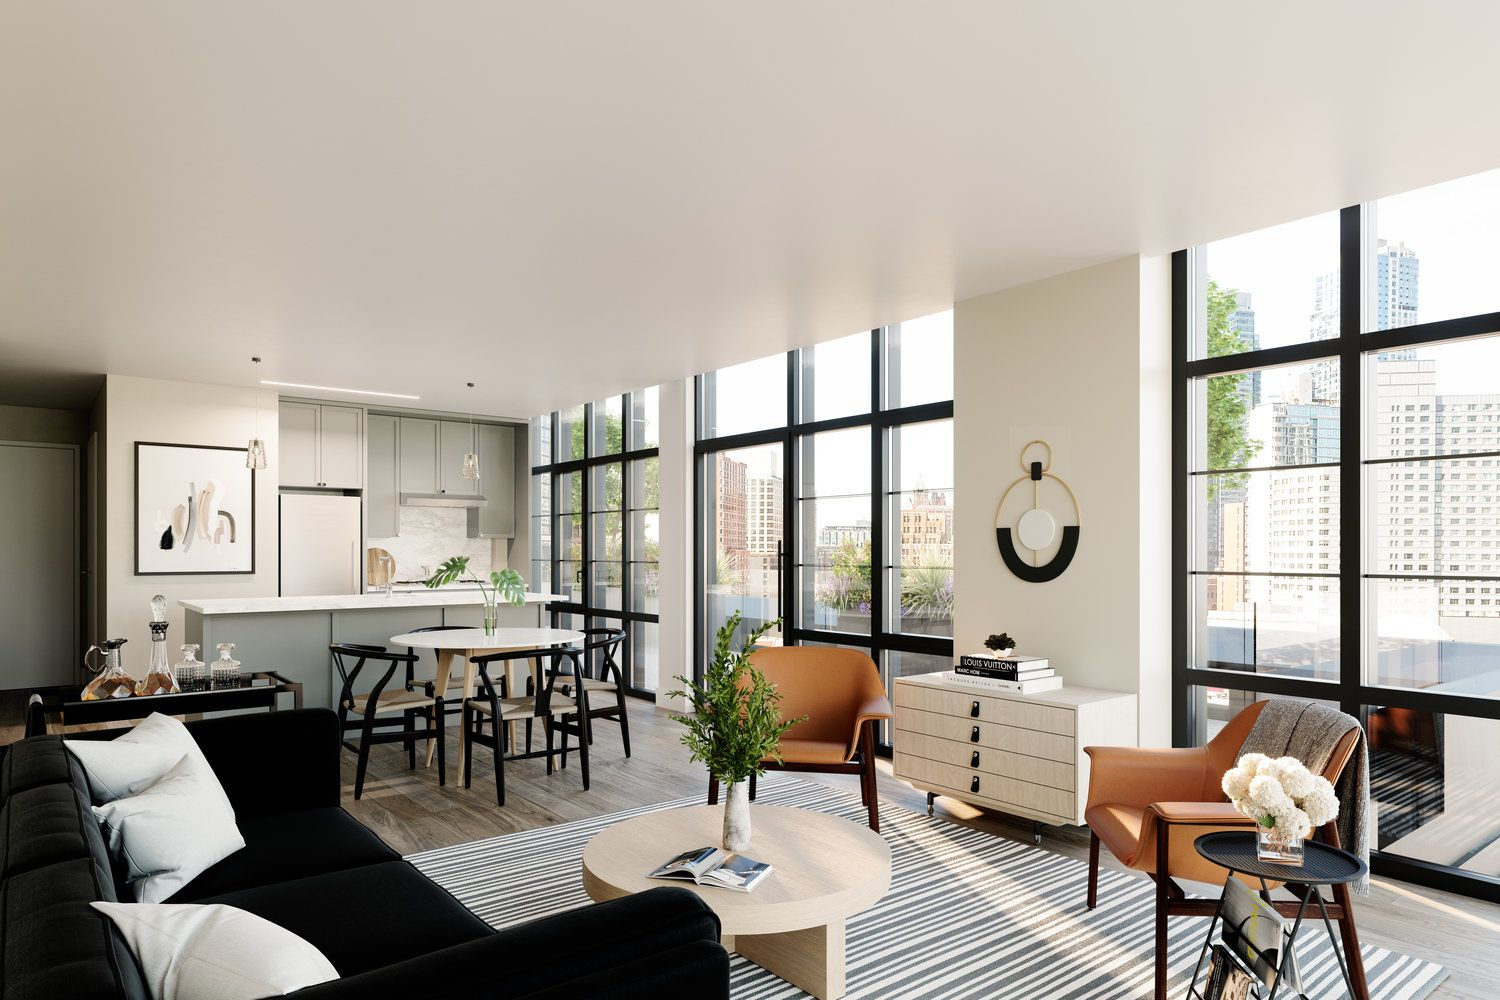 1 Flatbush Avenue Apartment Furnishing By Alchemy Studio Downtown Brooklyn Ny Living Room Comfy Couch Bar Areas